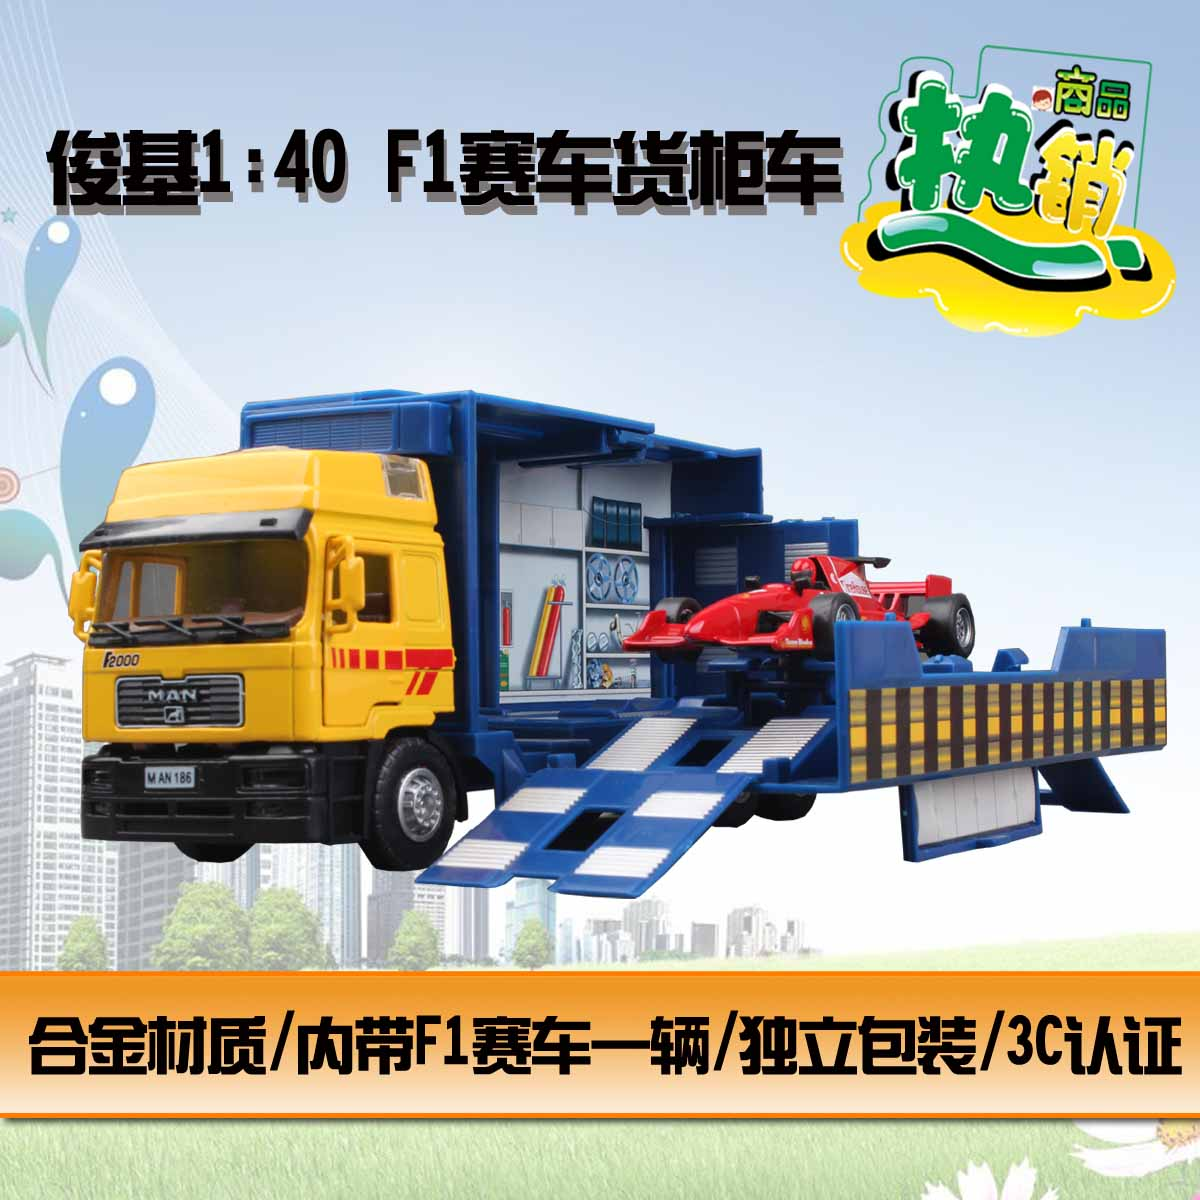 Csl 1:40 f1 racing truck container car repair car alloy car model toy car gift